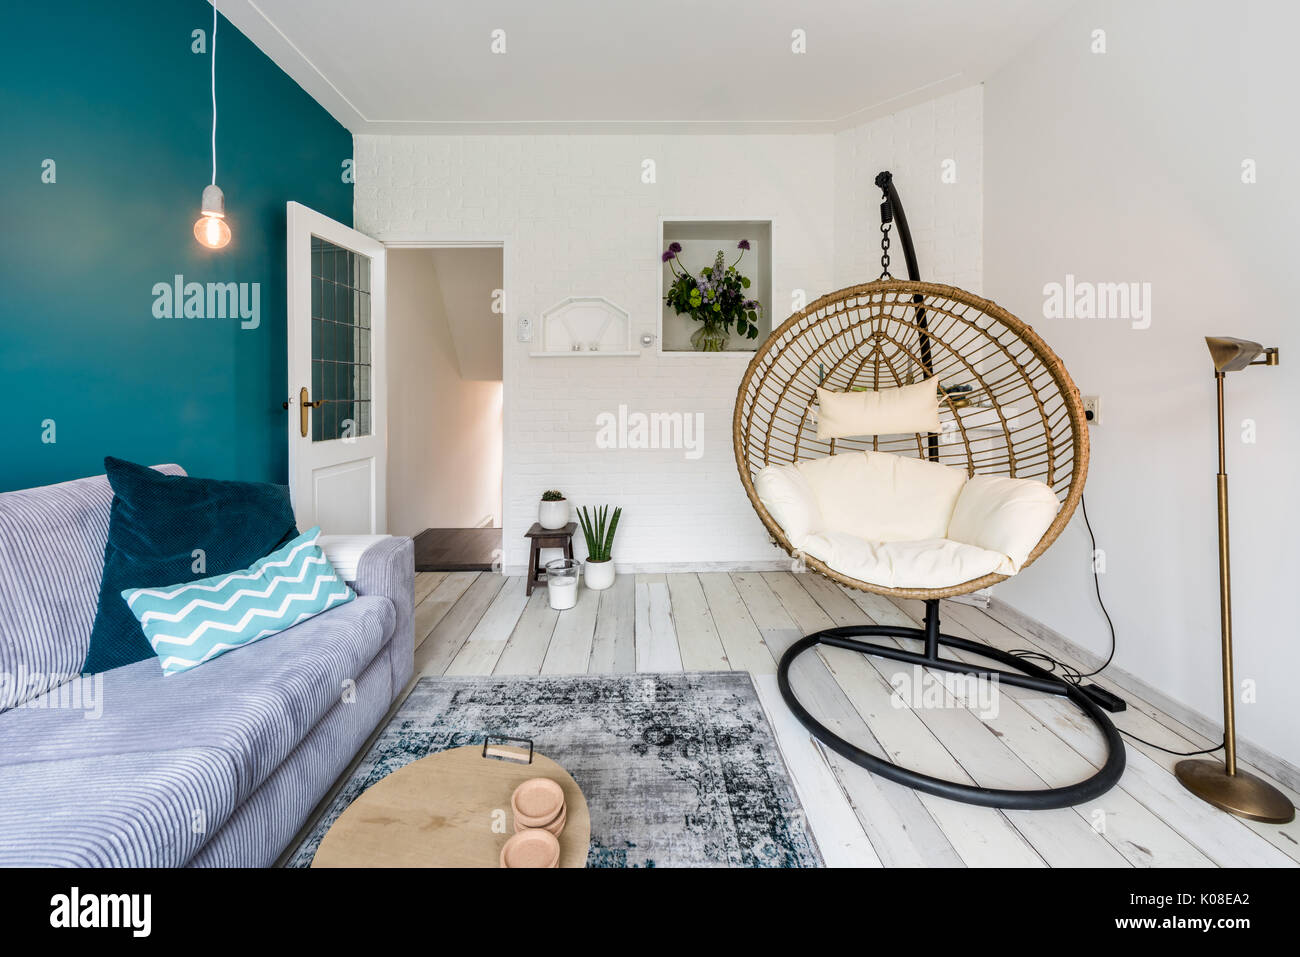 Cozy Living Room With Hanging Chair And Sofa Stock Photo